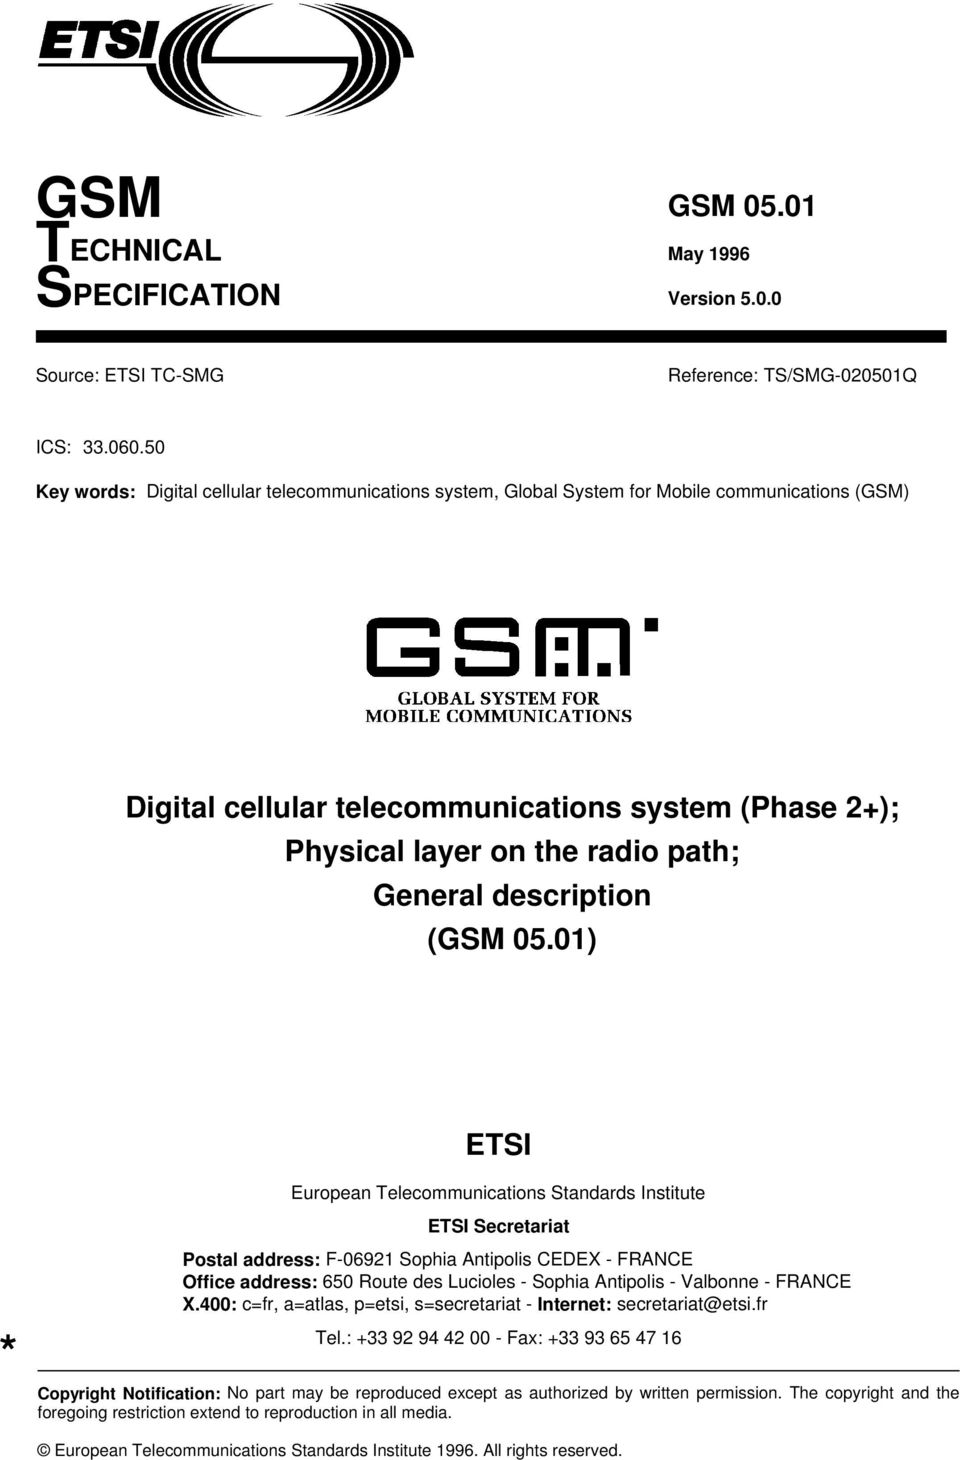 General description (GSM 05.